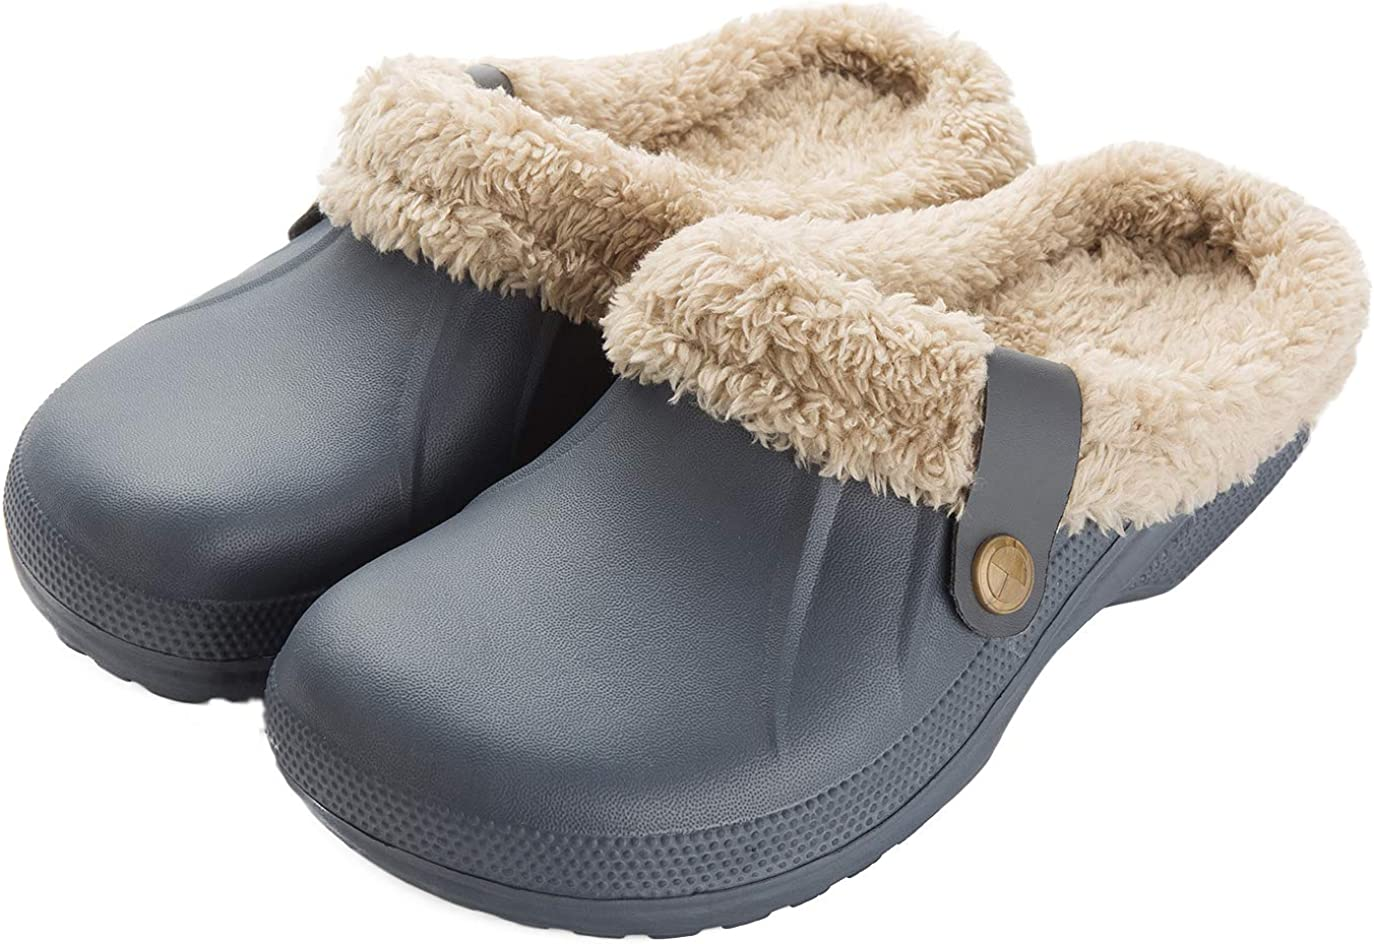 ChayChax Waterproof Slippers Women Men Fur Lined Clogs Winter Garden Shoes Warm House Slippers Indoor Outdoor Mules